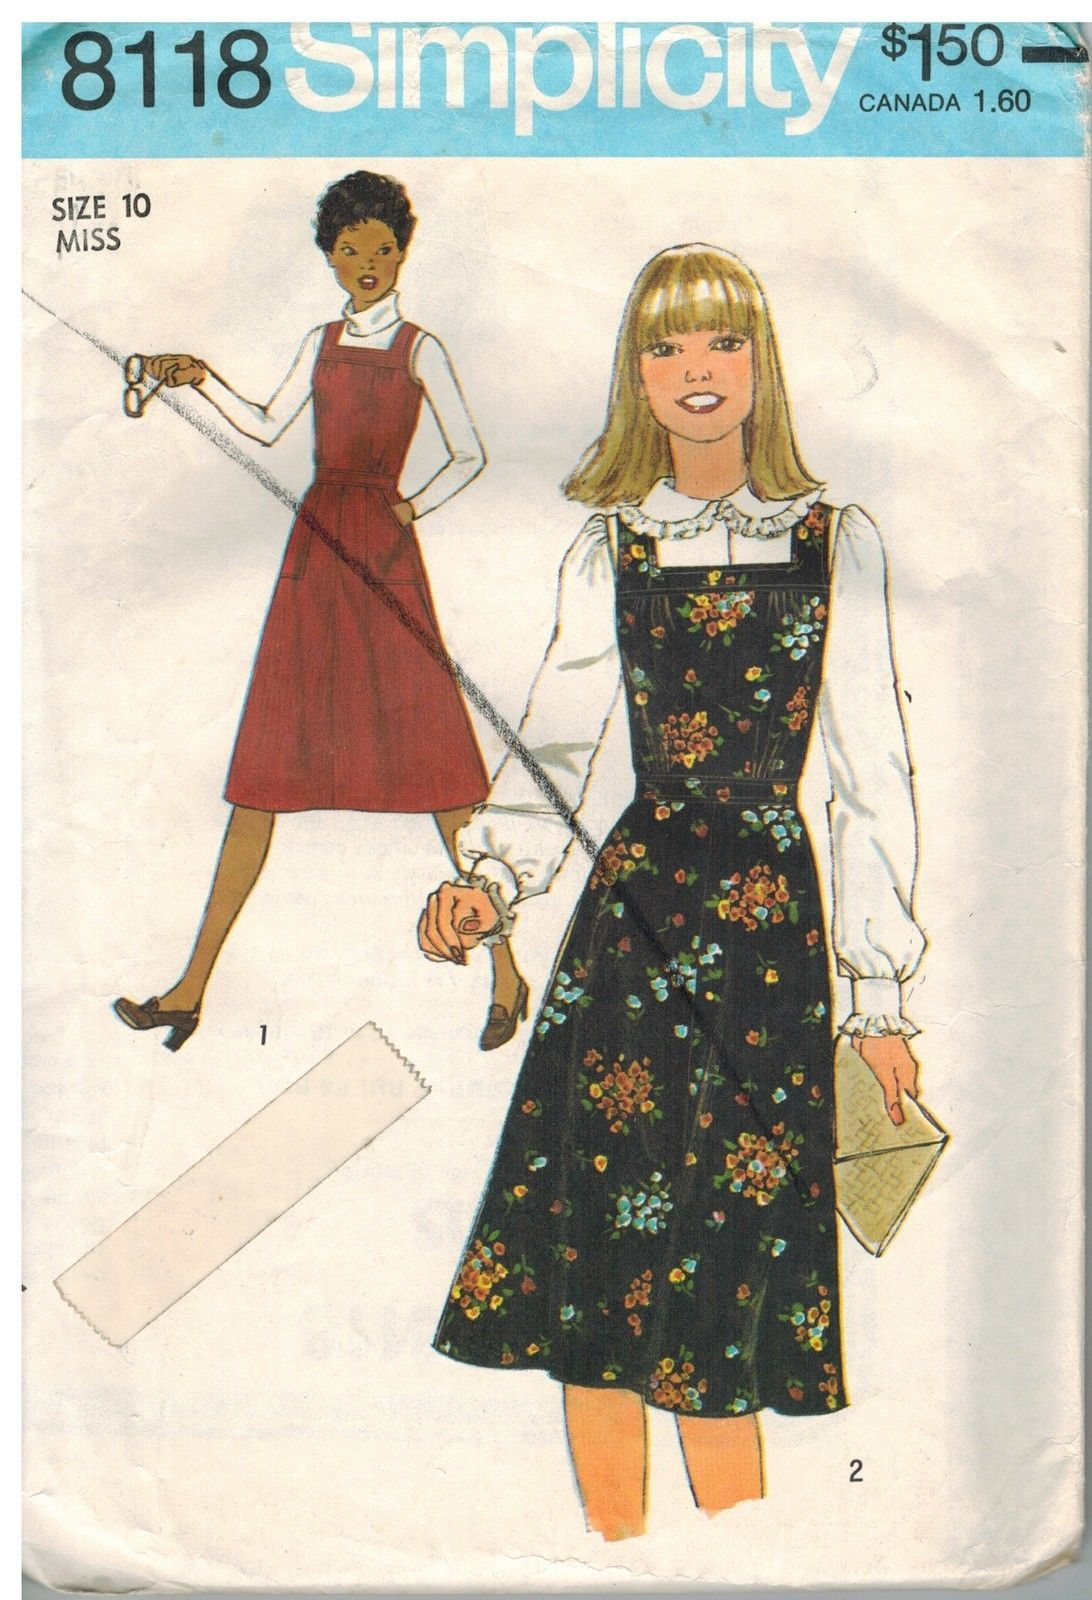 Primary image for 8118 Vintage Simplicity Sewing Pattern Misses Top Stitched Jumper Fall Winter